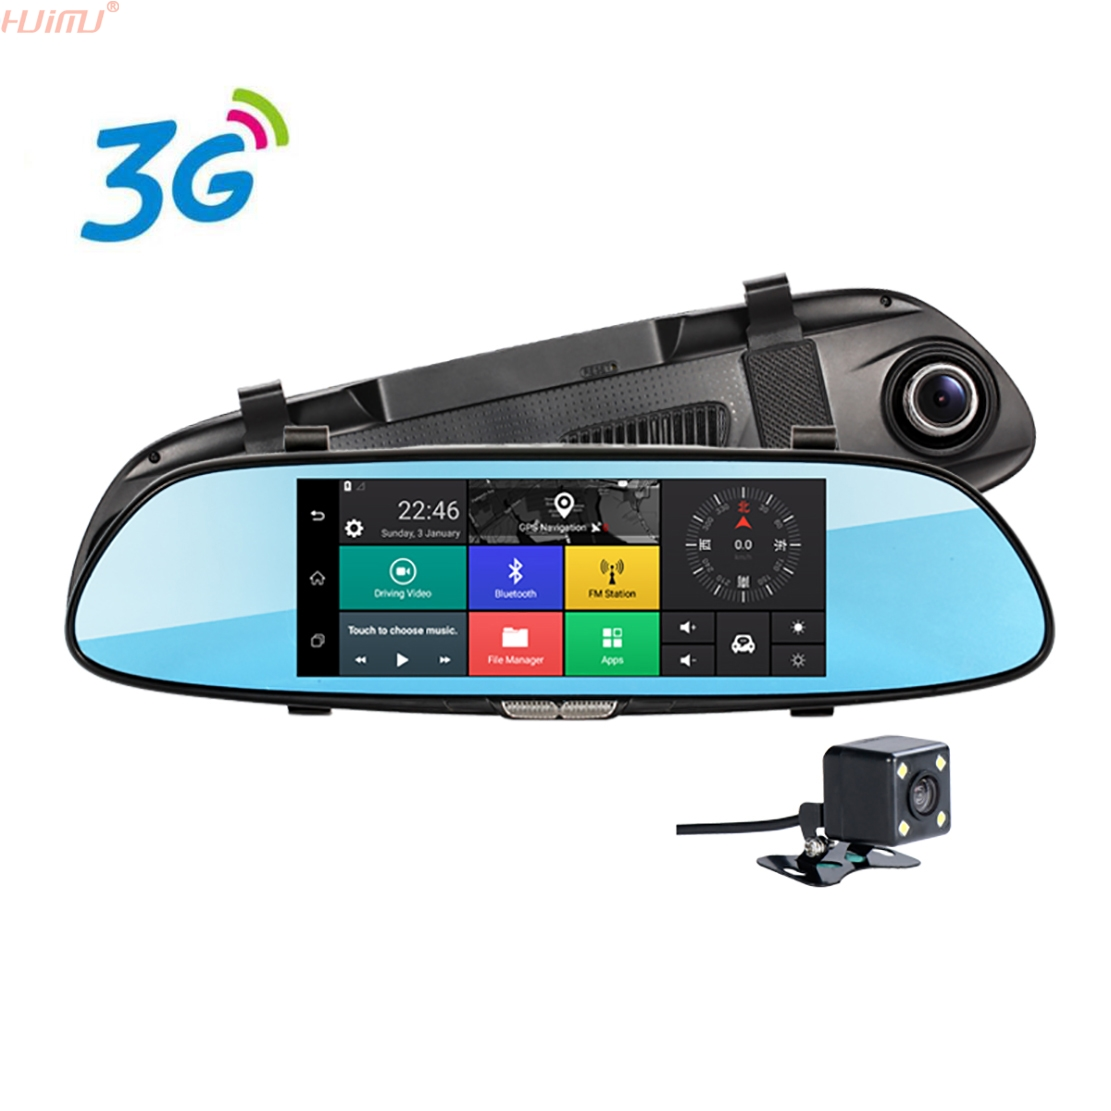 night vision New 3G Car DVR 7 inch IPS GPS Navigation Android 5.0 Bluetooth Rearview DVR Mirror Recorder Camera Sat Nav Vehicle цена